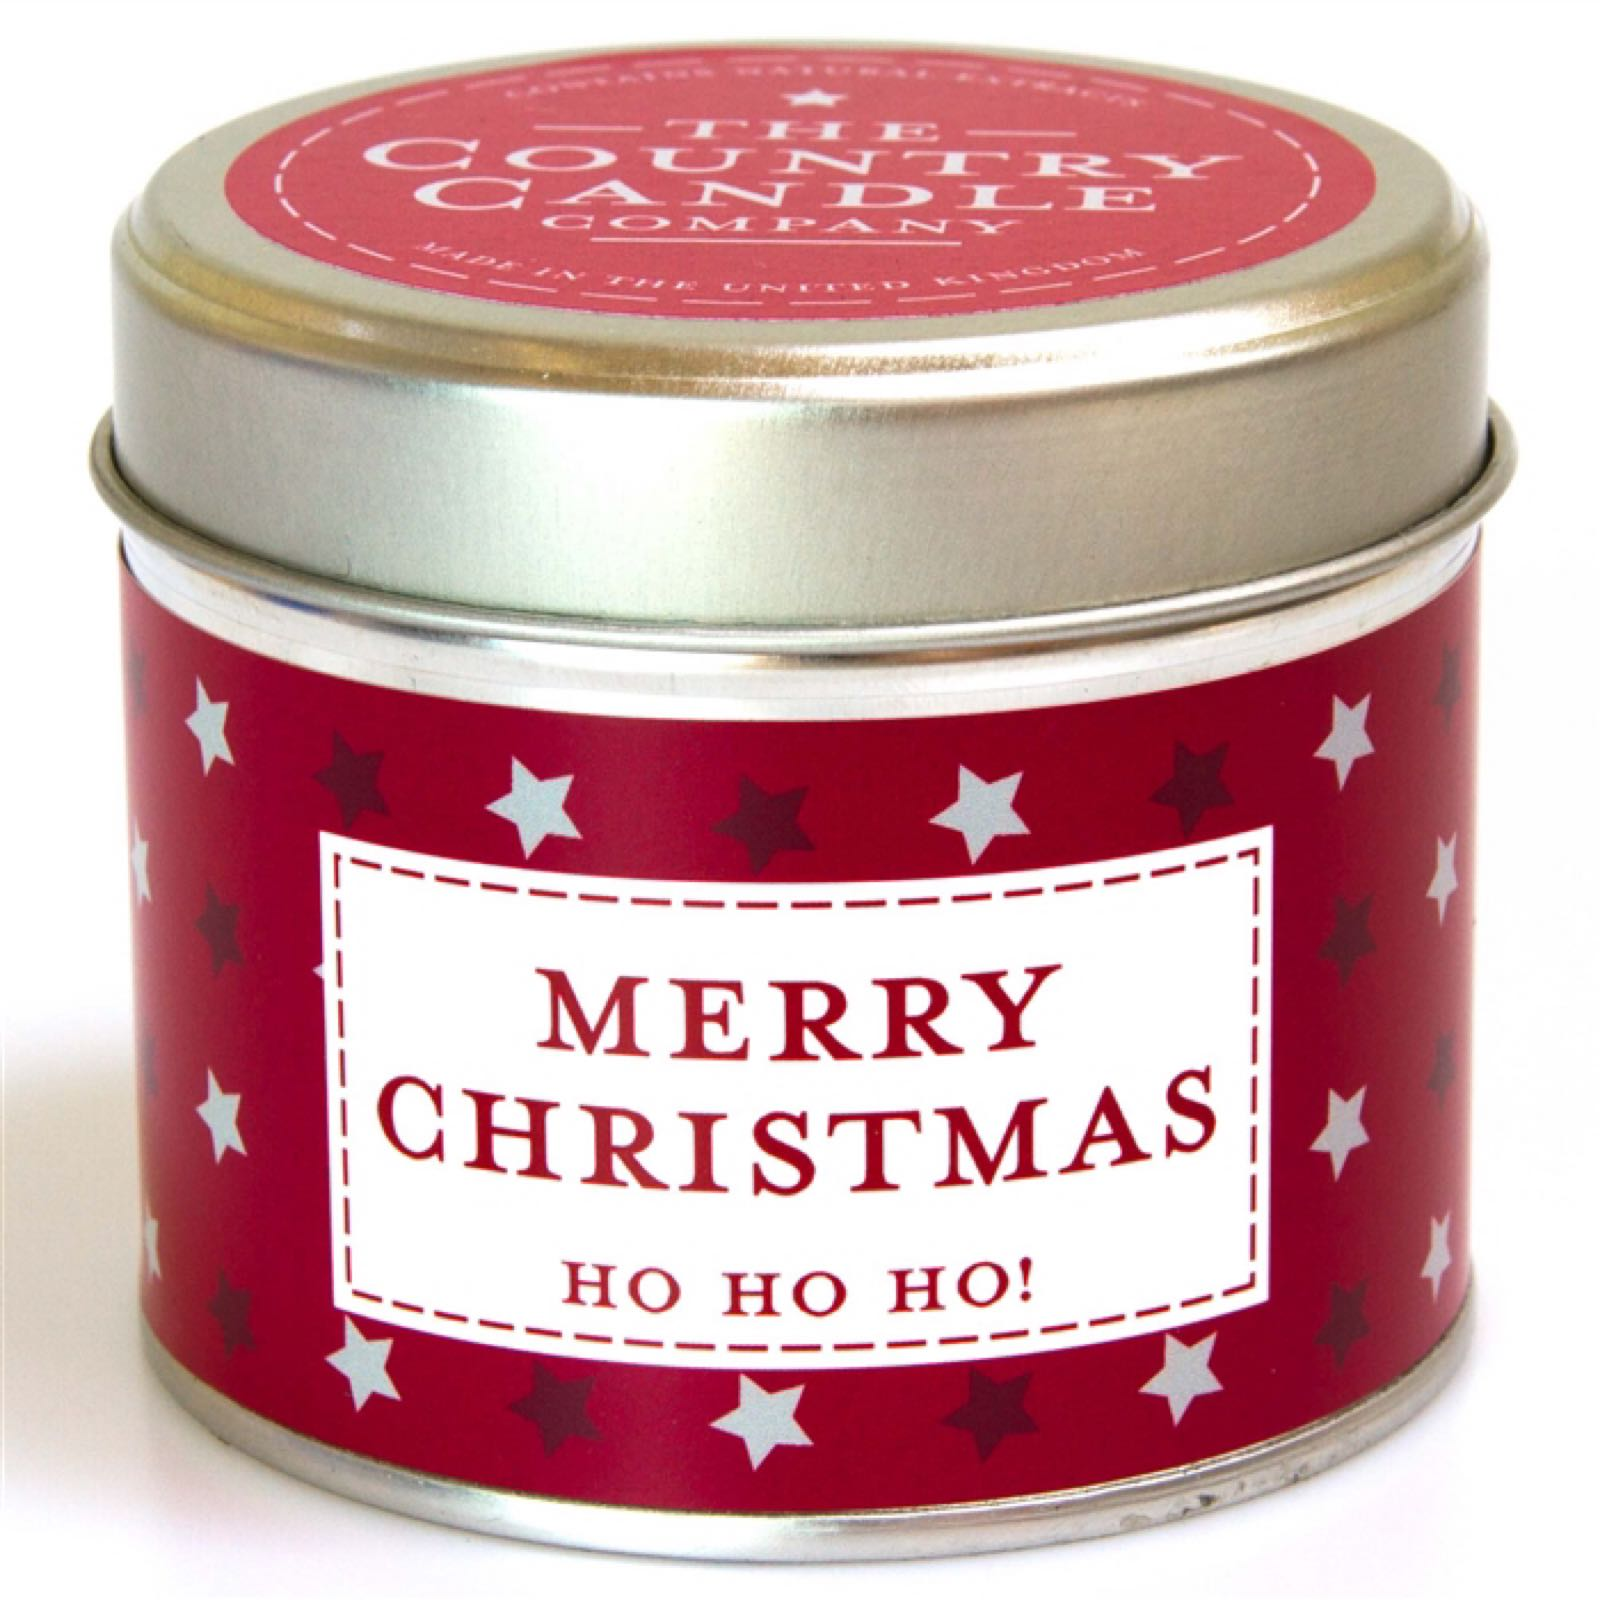 'Merry Christmas' Candle in a Tin